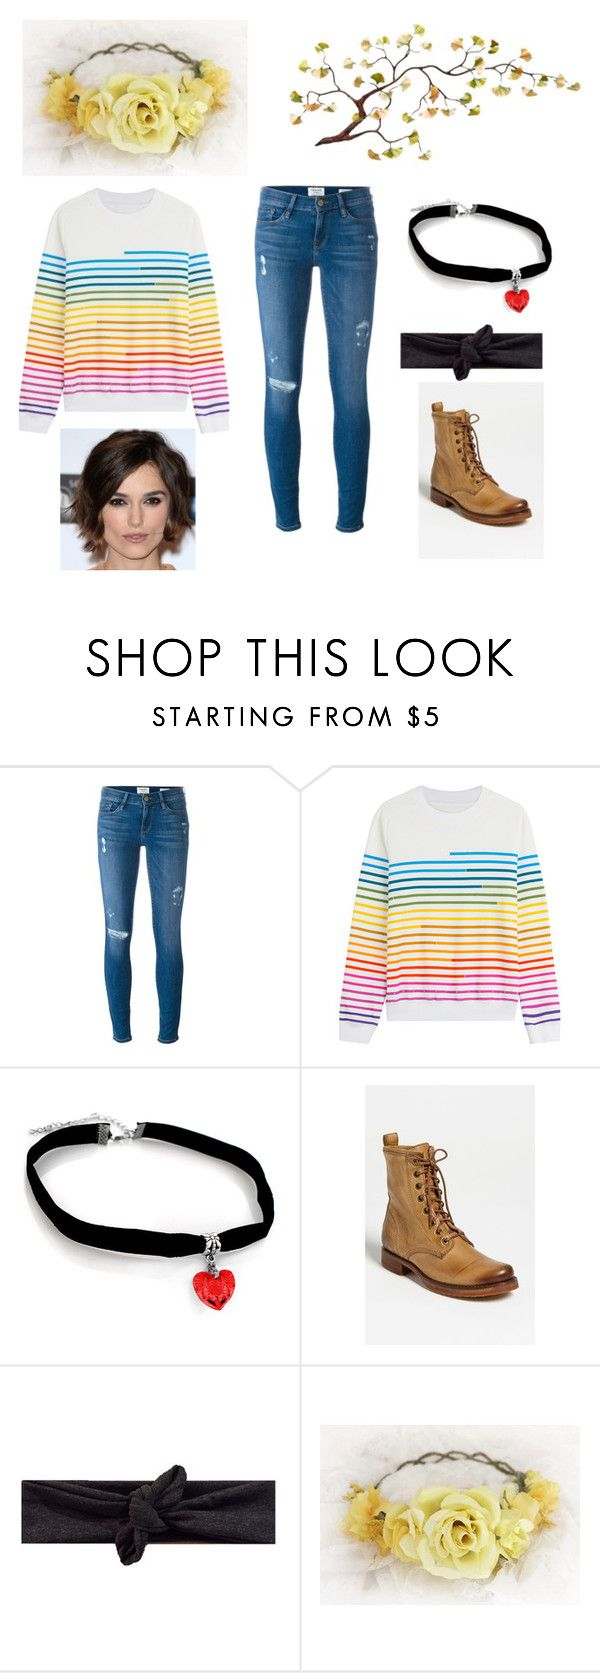 """""""Darcy in the Undertale universe"""" by potato-cloud on Polyvore featuring Frame Denim, Mary Katrantzou, Frye, OC and undertale"""